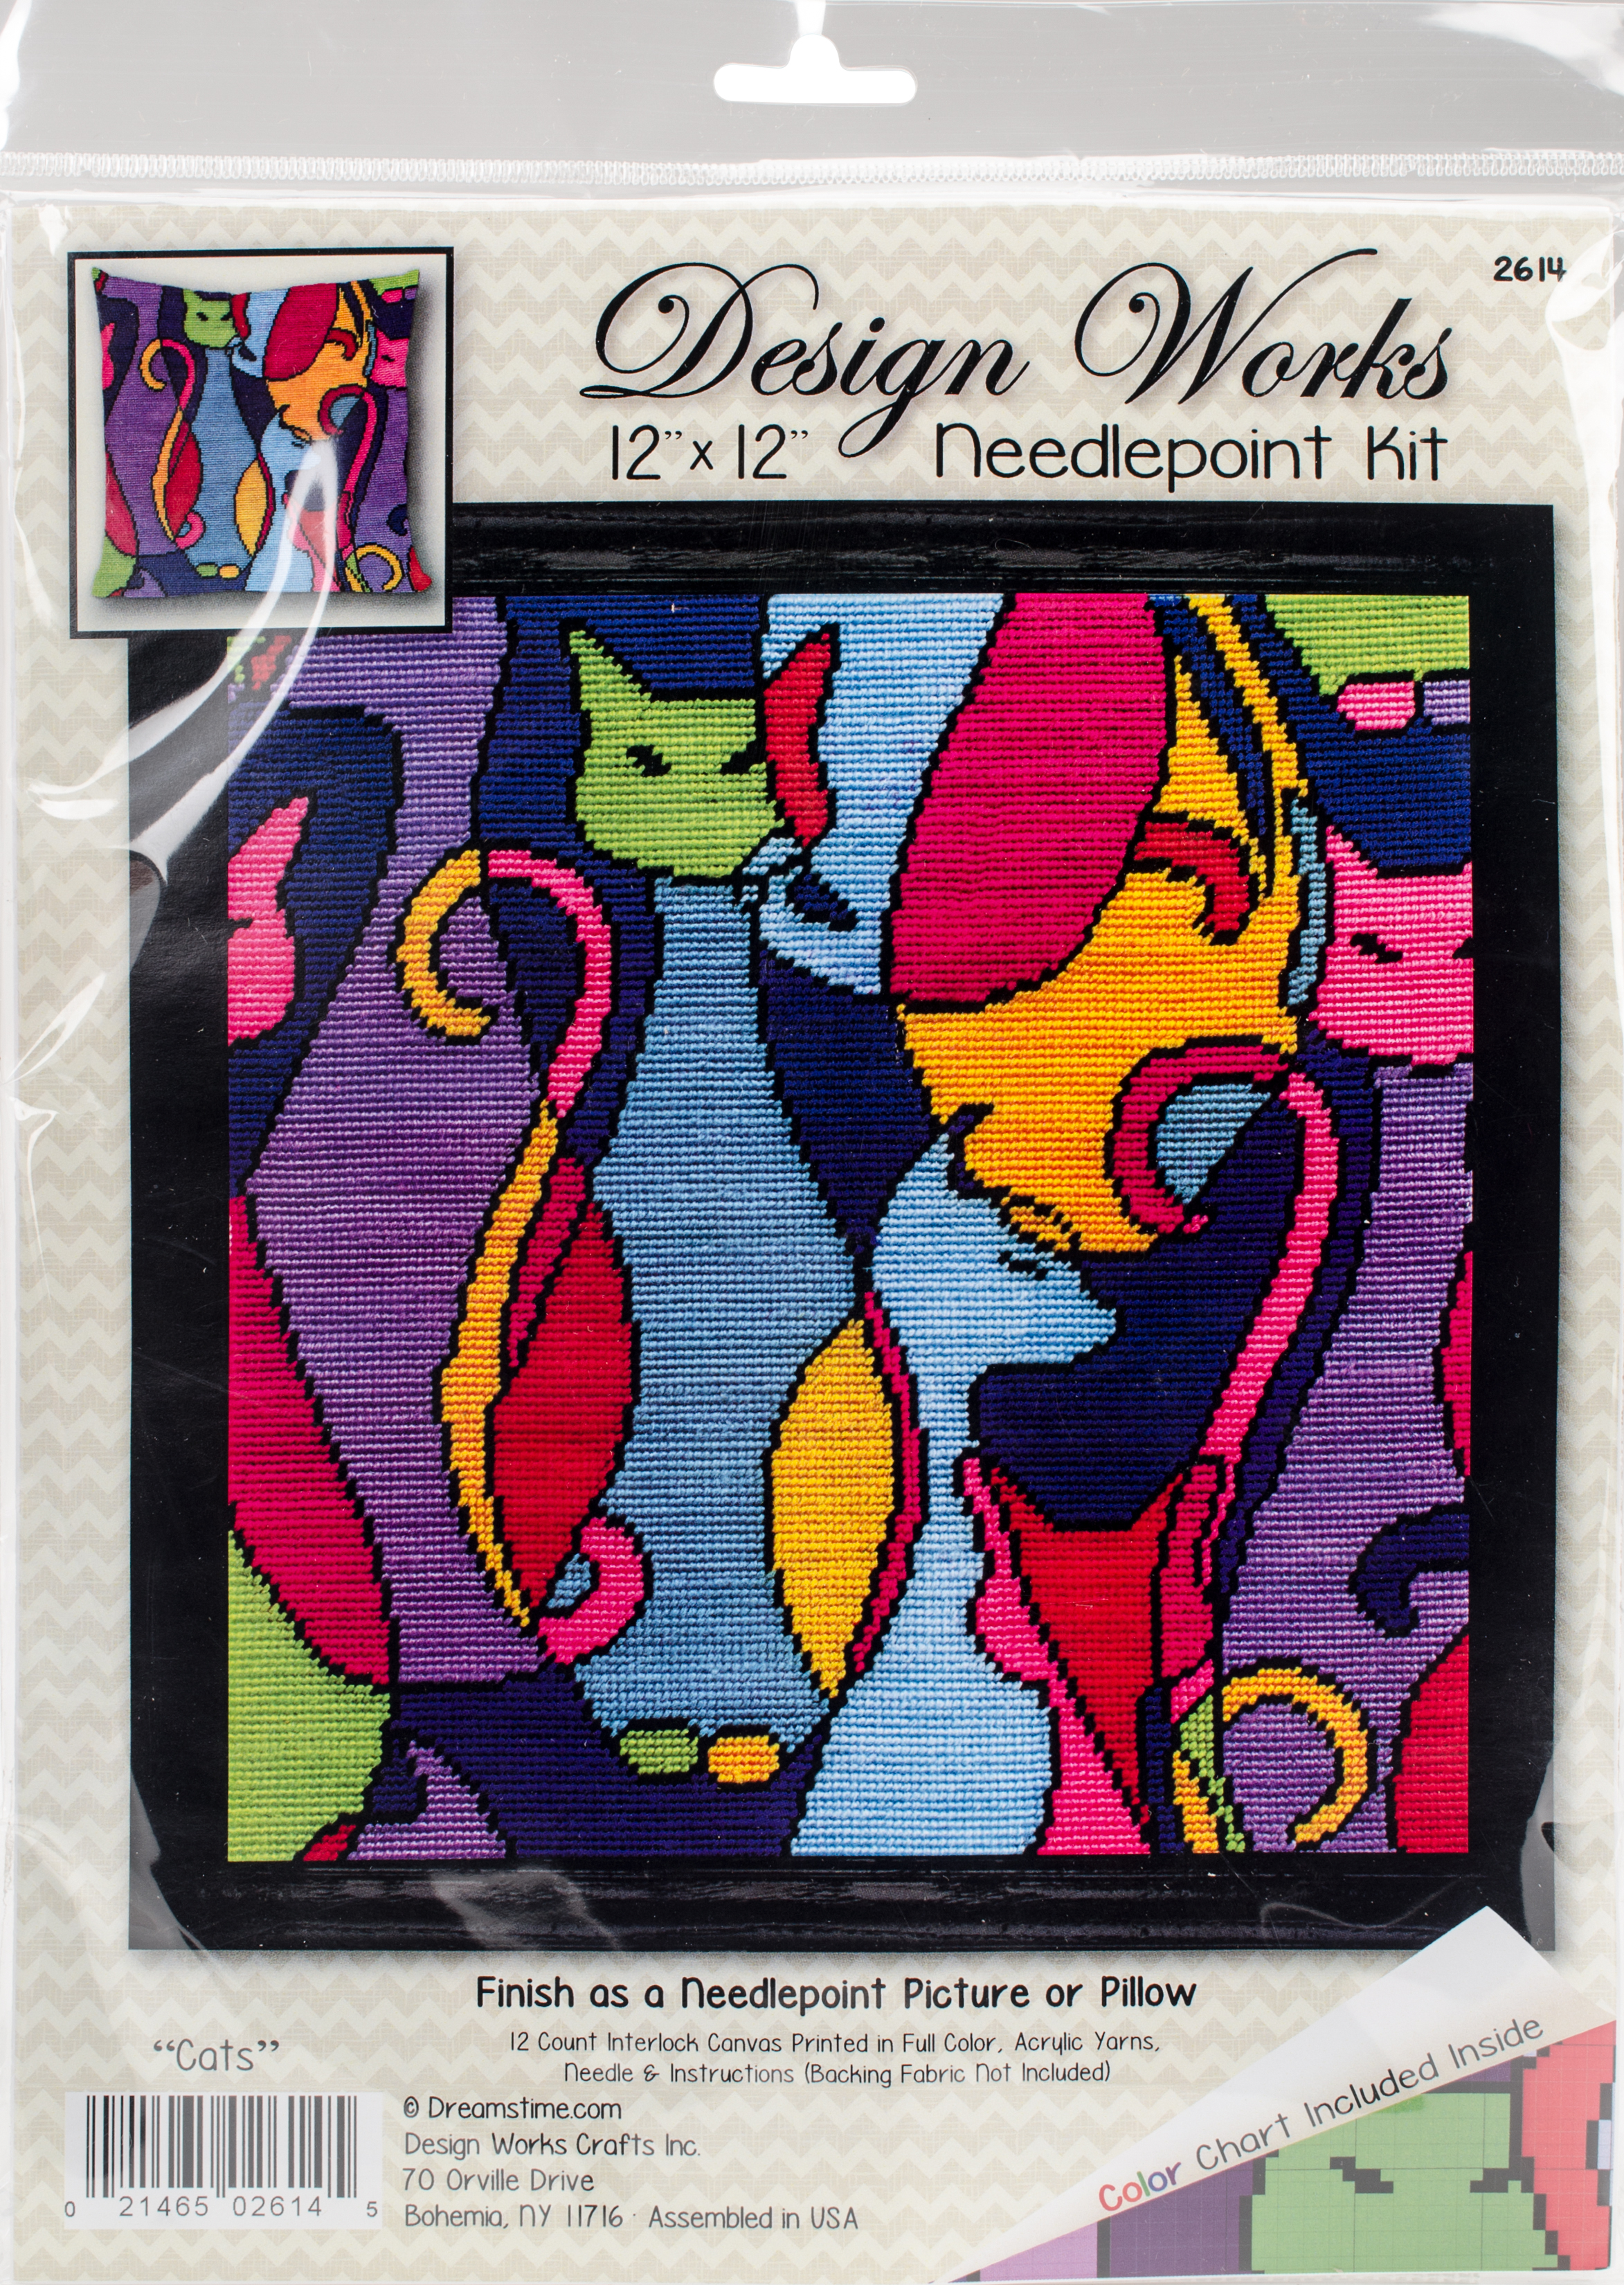 Design Works Needlepoint Kit 12X12-Colorful Cat-Stitched In Yarn